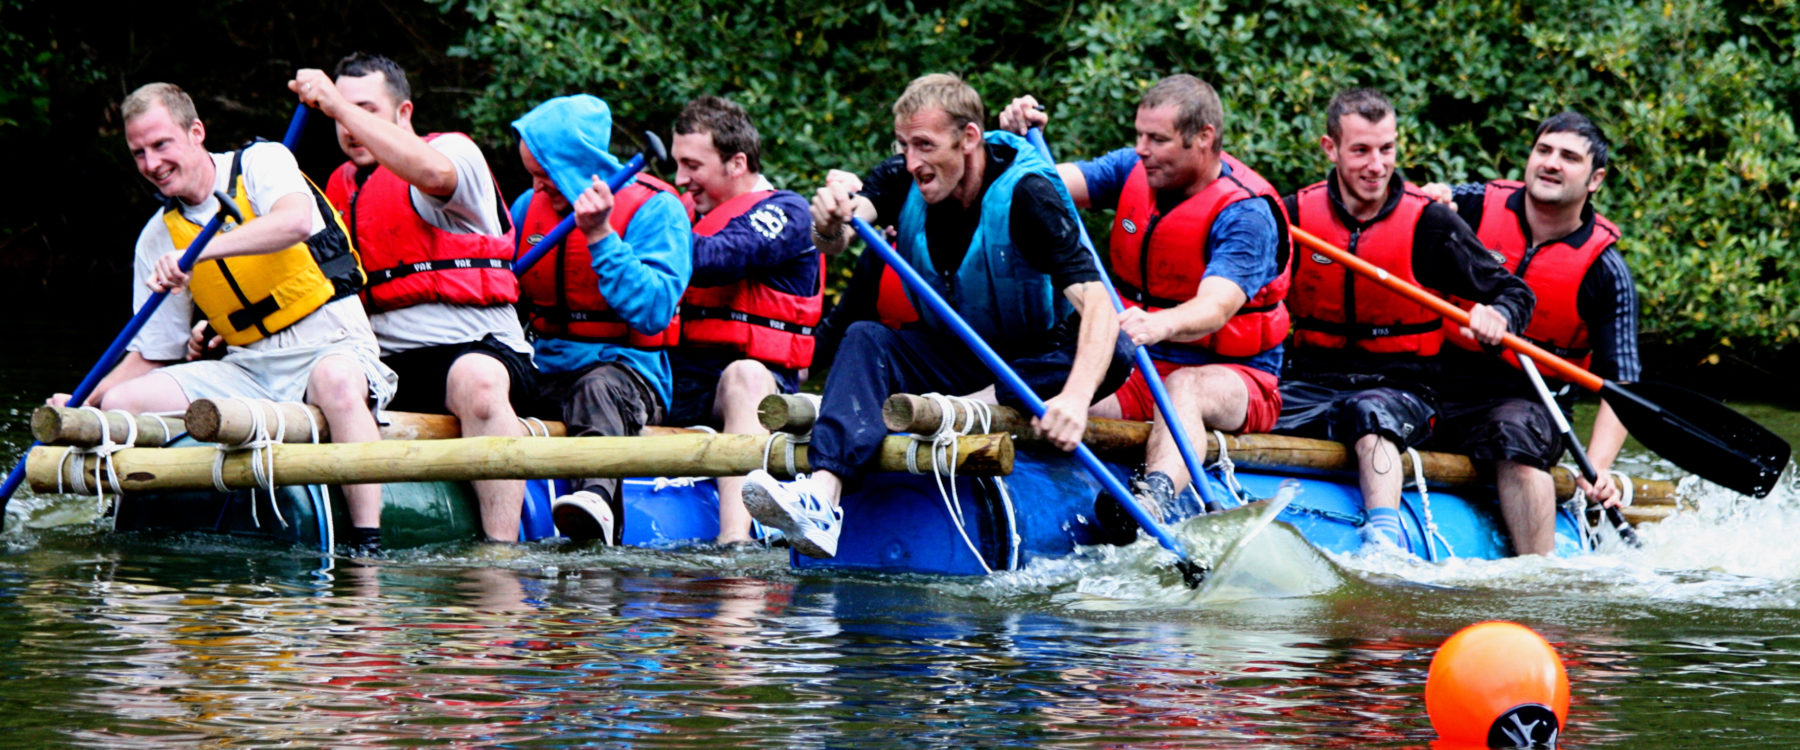 Raft Building for Companies